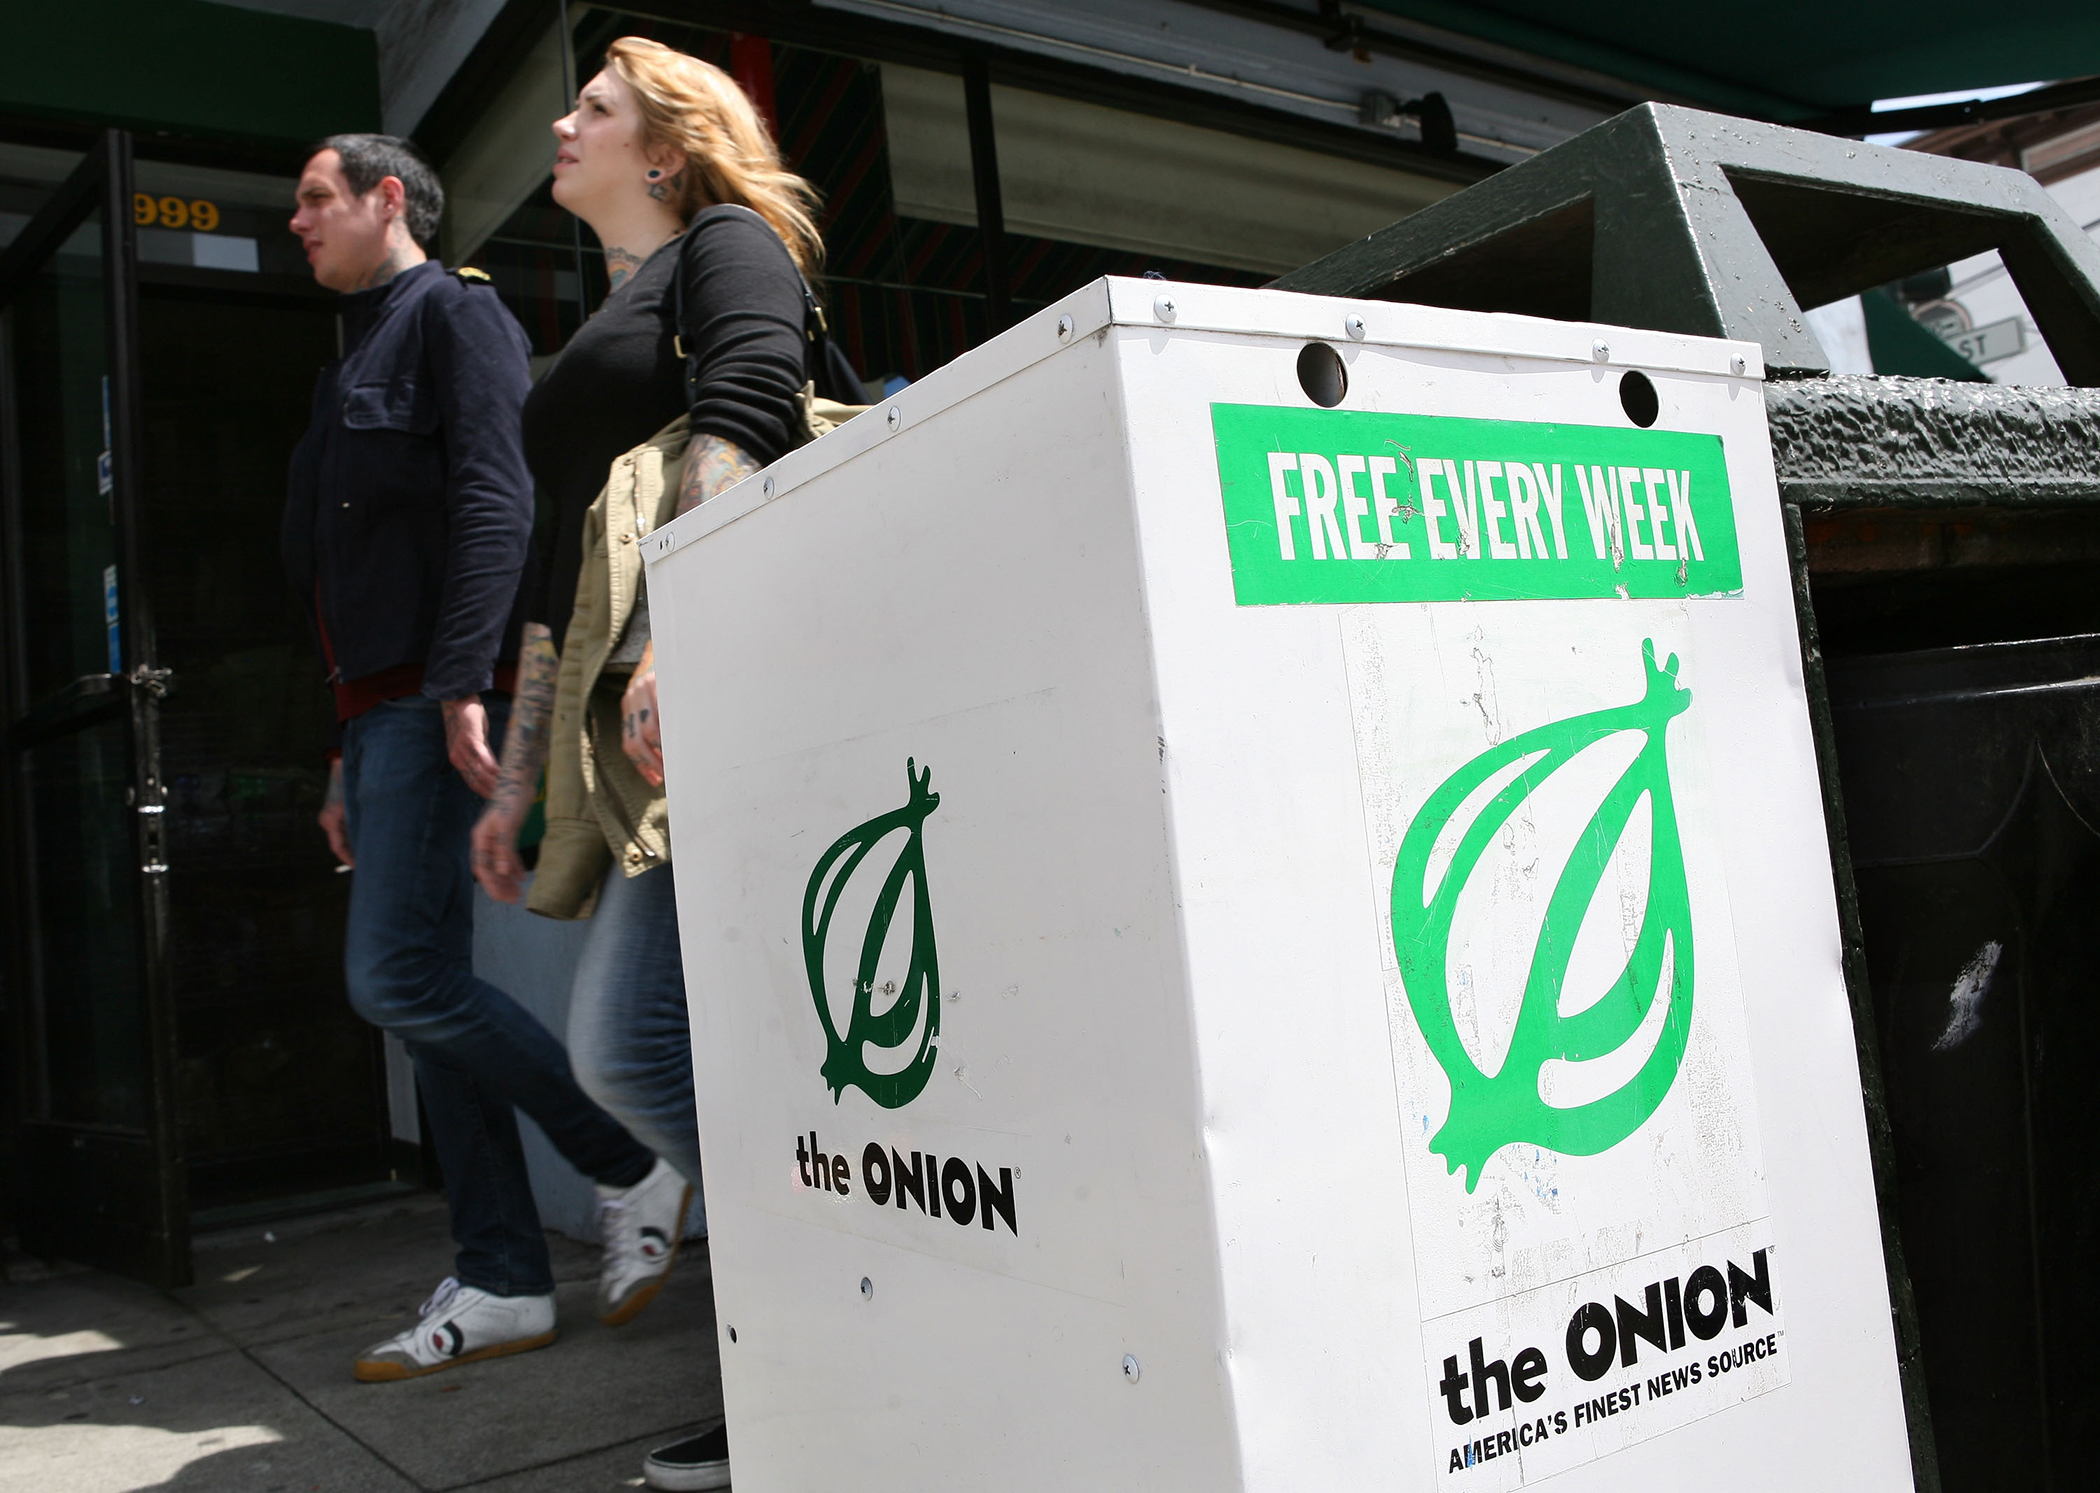 Pedestrians walk by an Onion news rack May 5, 2009 in San Francisco, California.